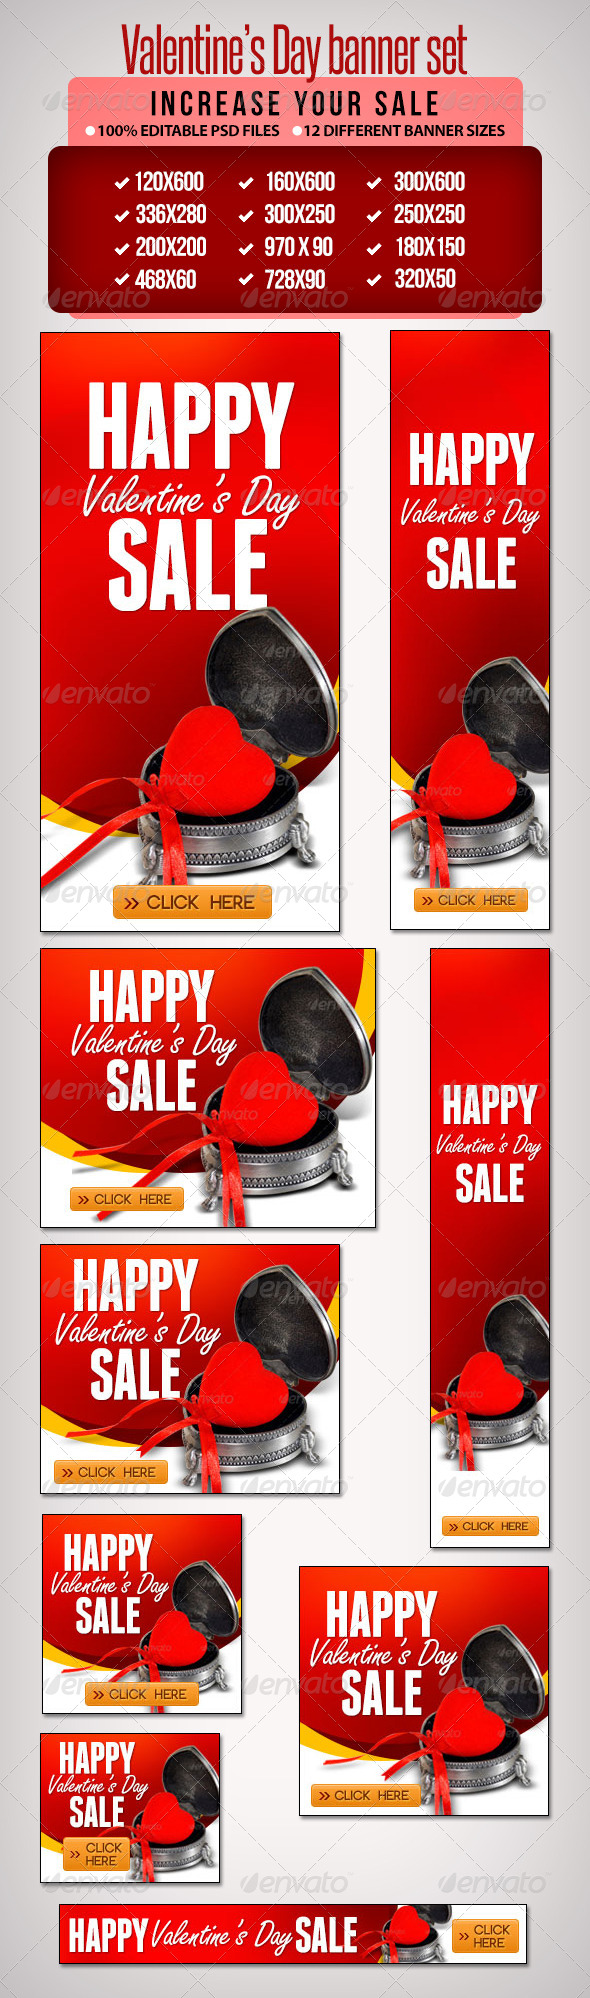 Valentine's Day Banner Set 6 - Banners & Ads Web Elements